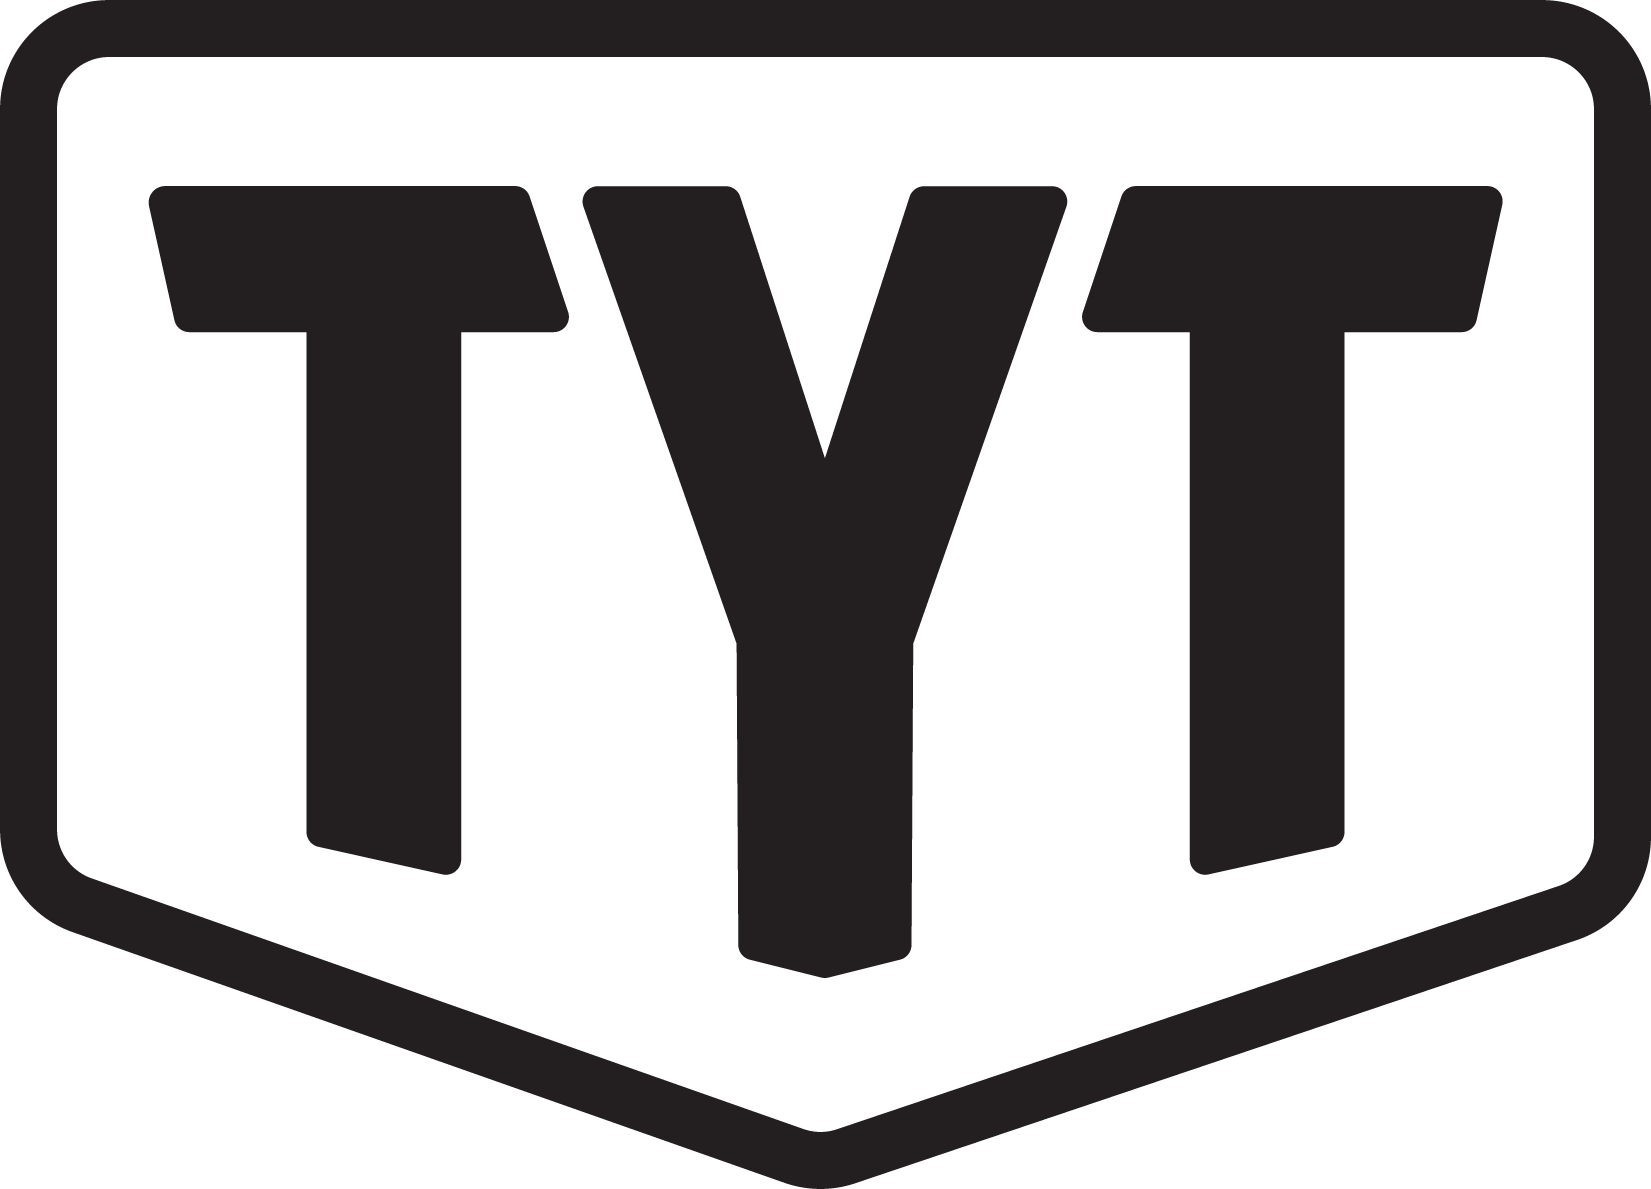 The Young Turks logo